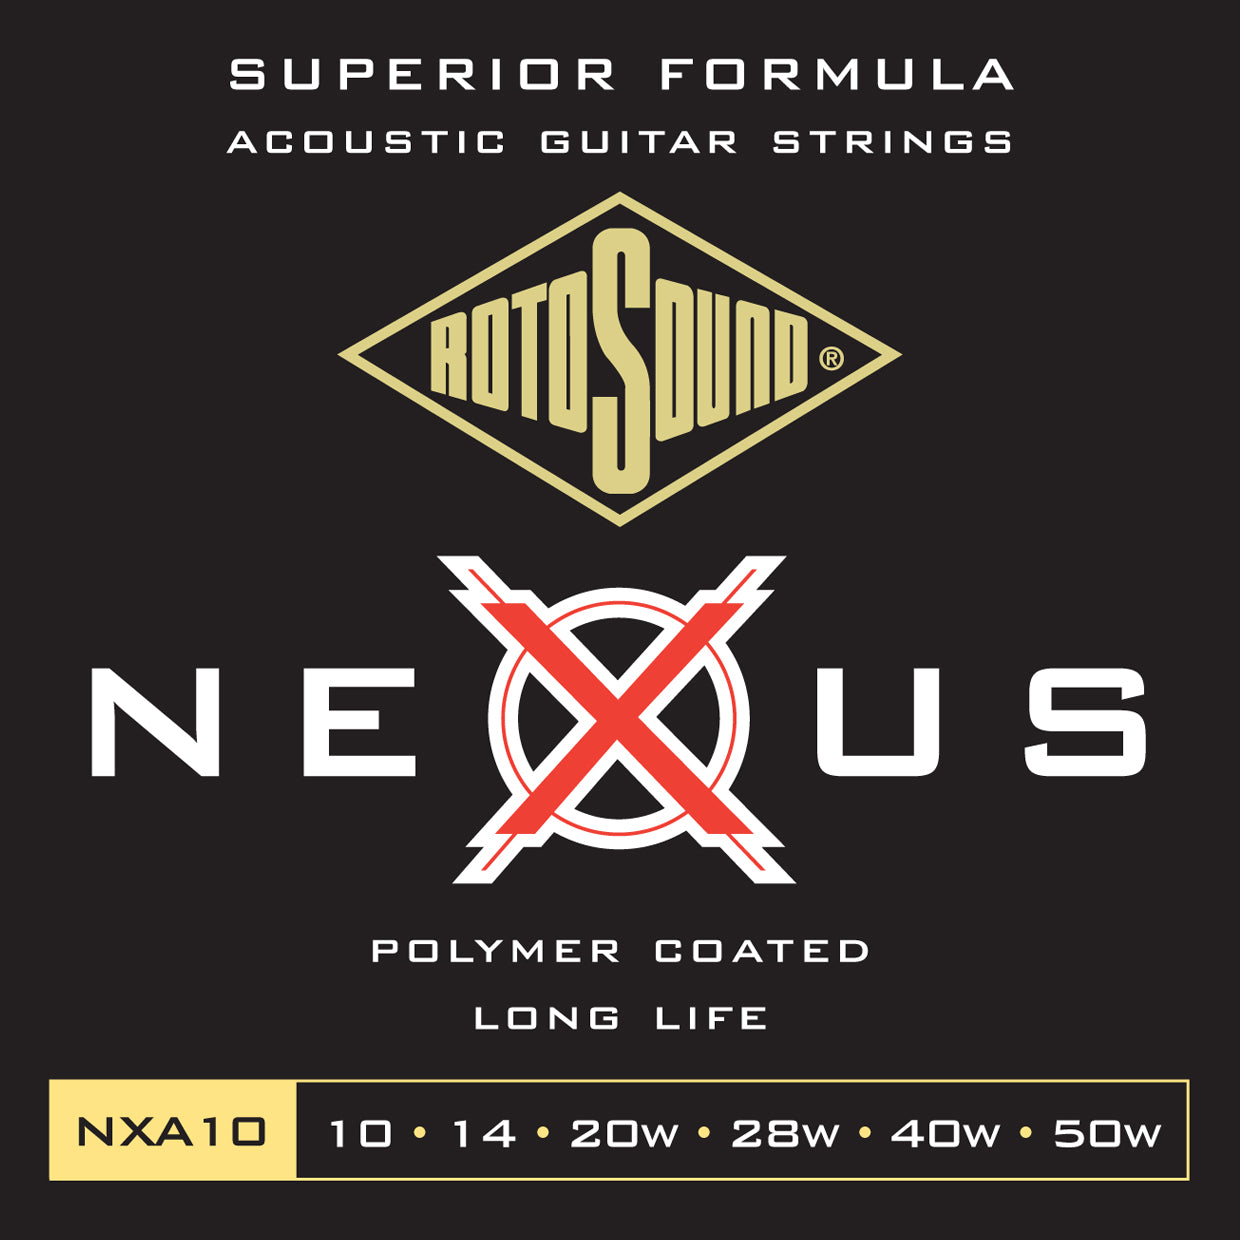 Rotosound Nexus Acoustic Guitar Strings - Gears For Ears